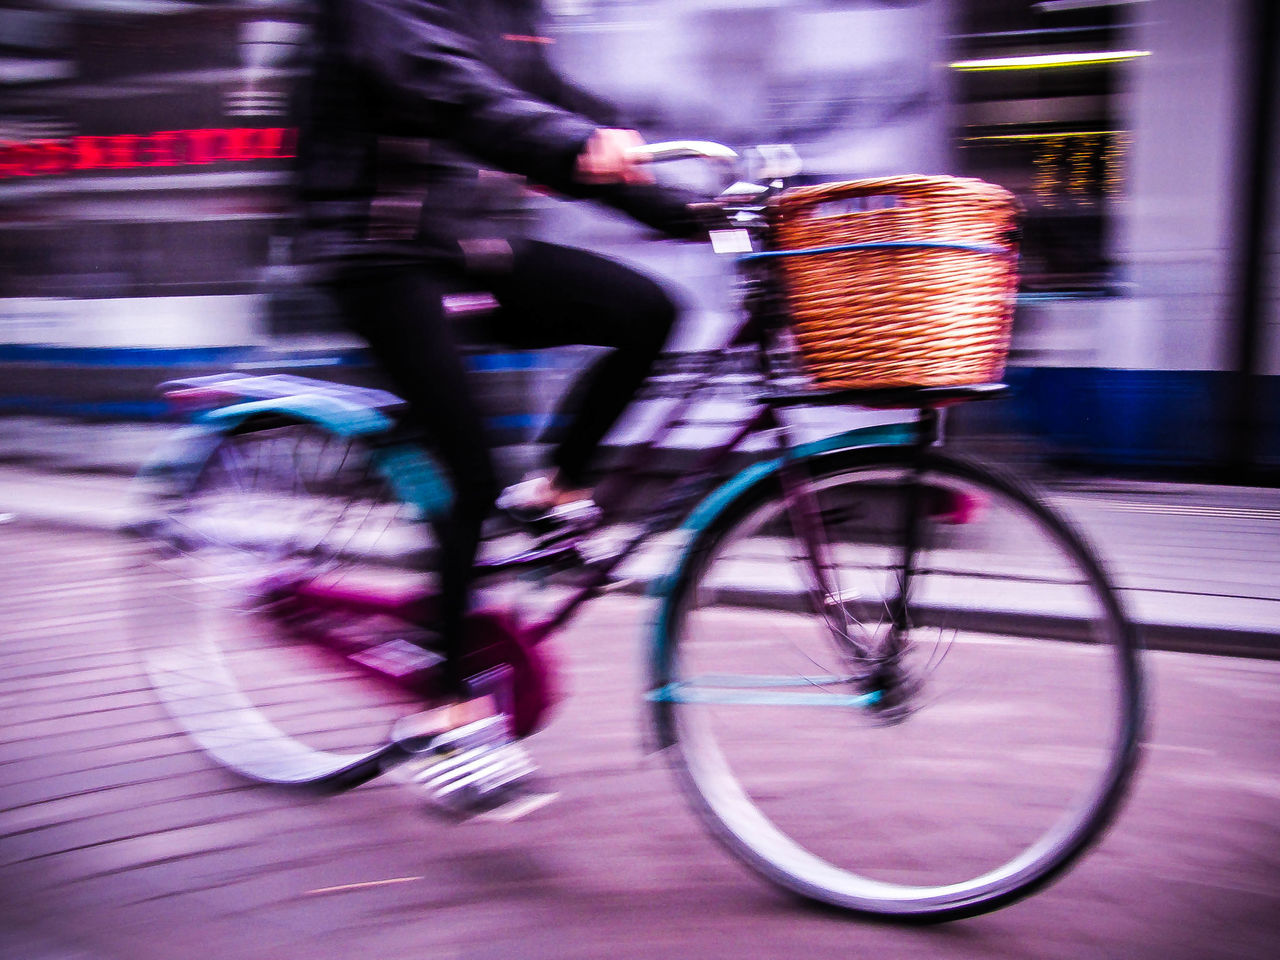 bicycle, blurred motion, transportation, mode of transport, street, cycling, real people, motion, riding, speed, outdoors, side view, land vehicle, one person, day, city, low section, men, people